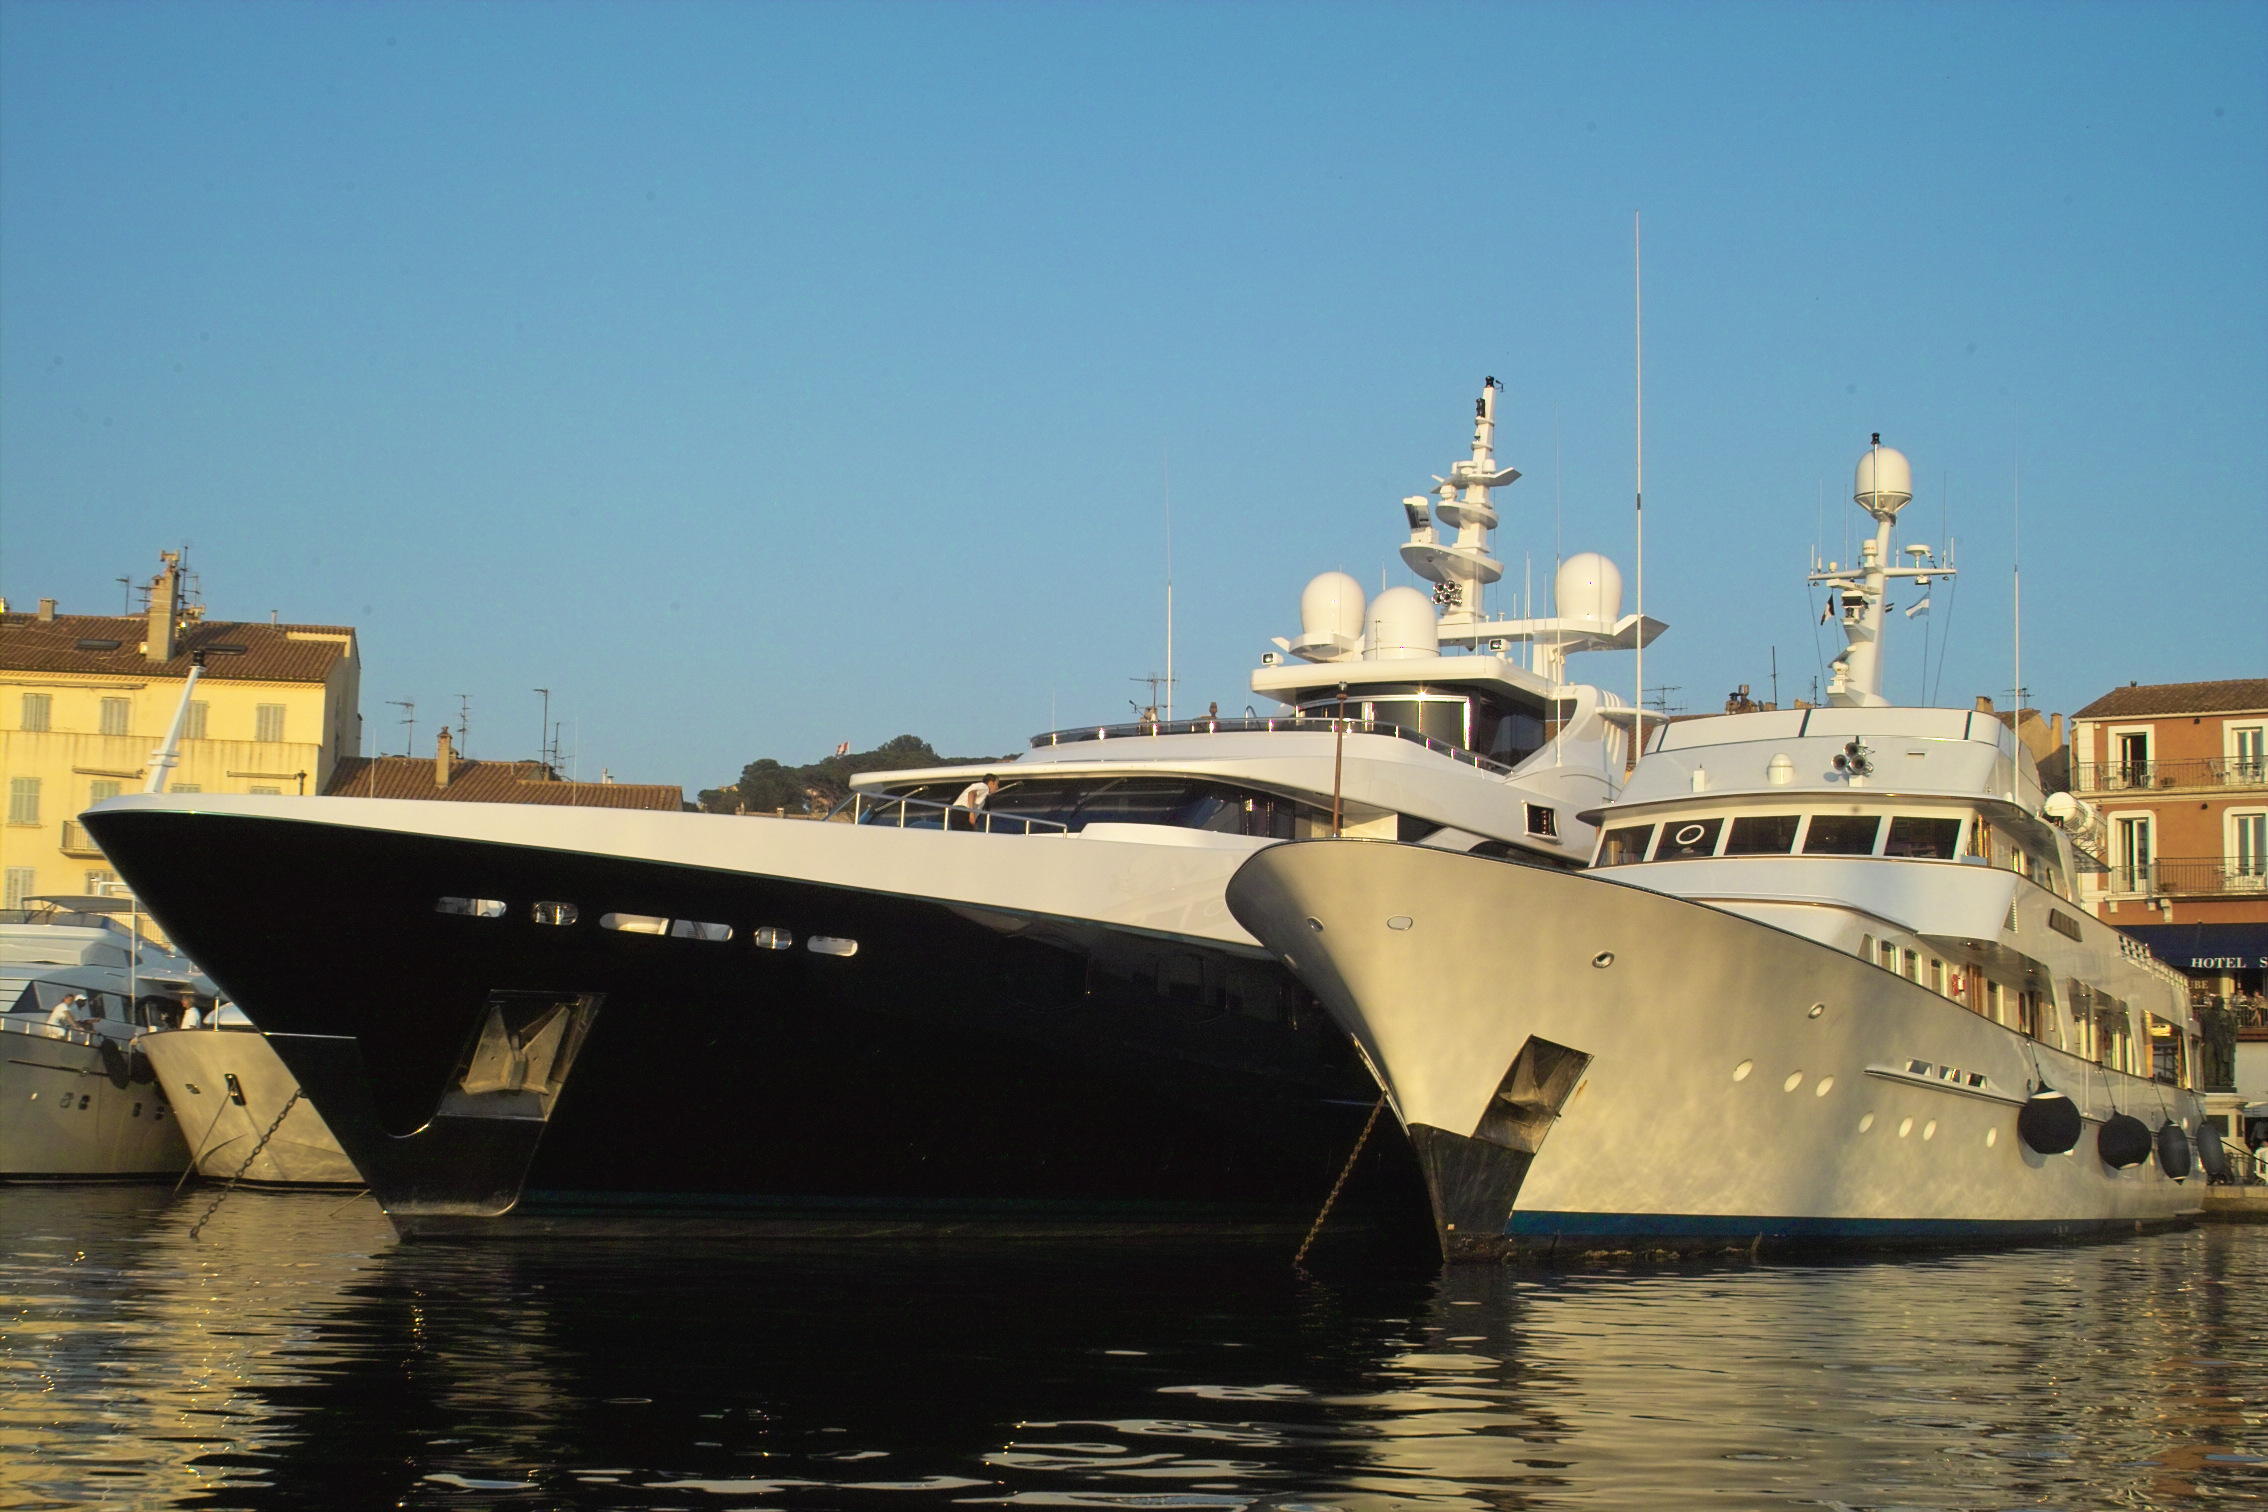 Luxury yachts in Saint-Tropez, 2006